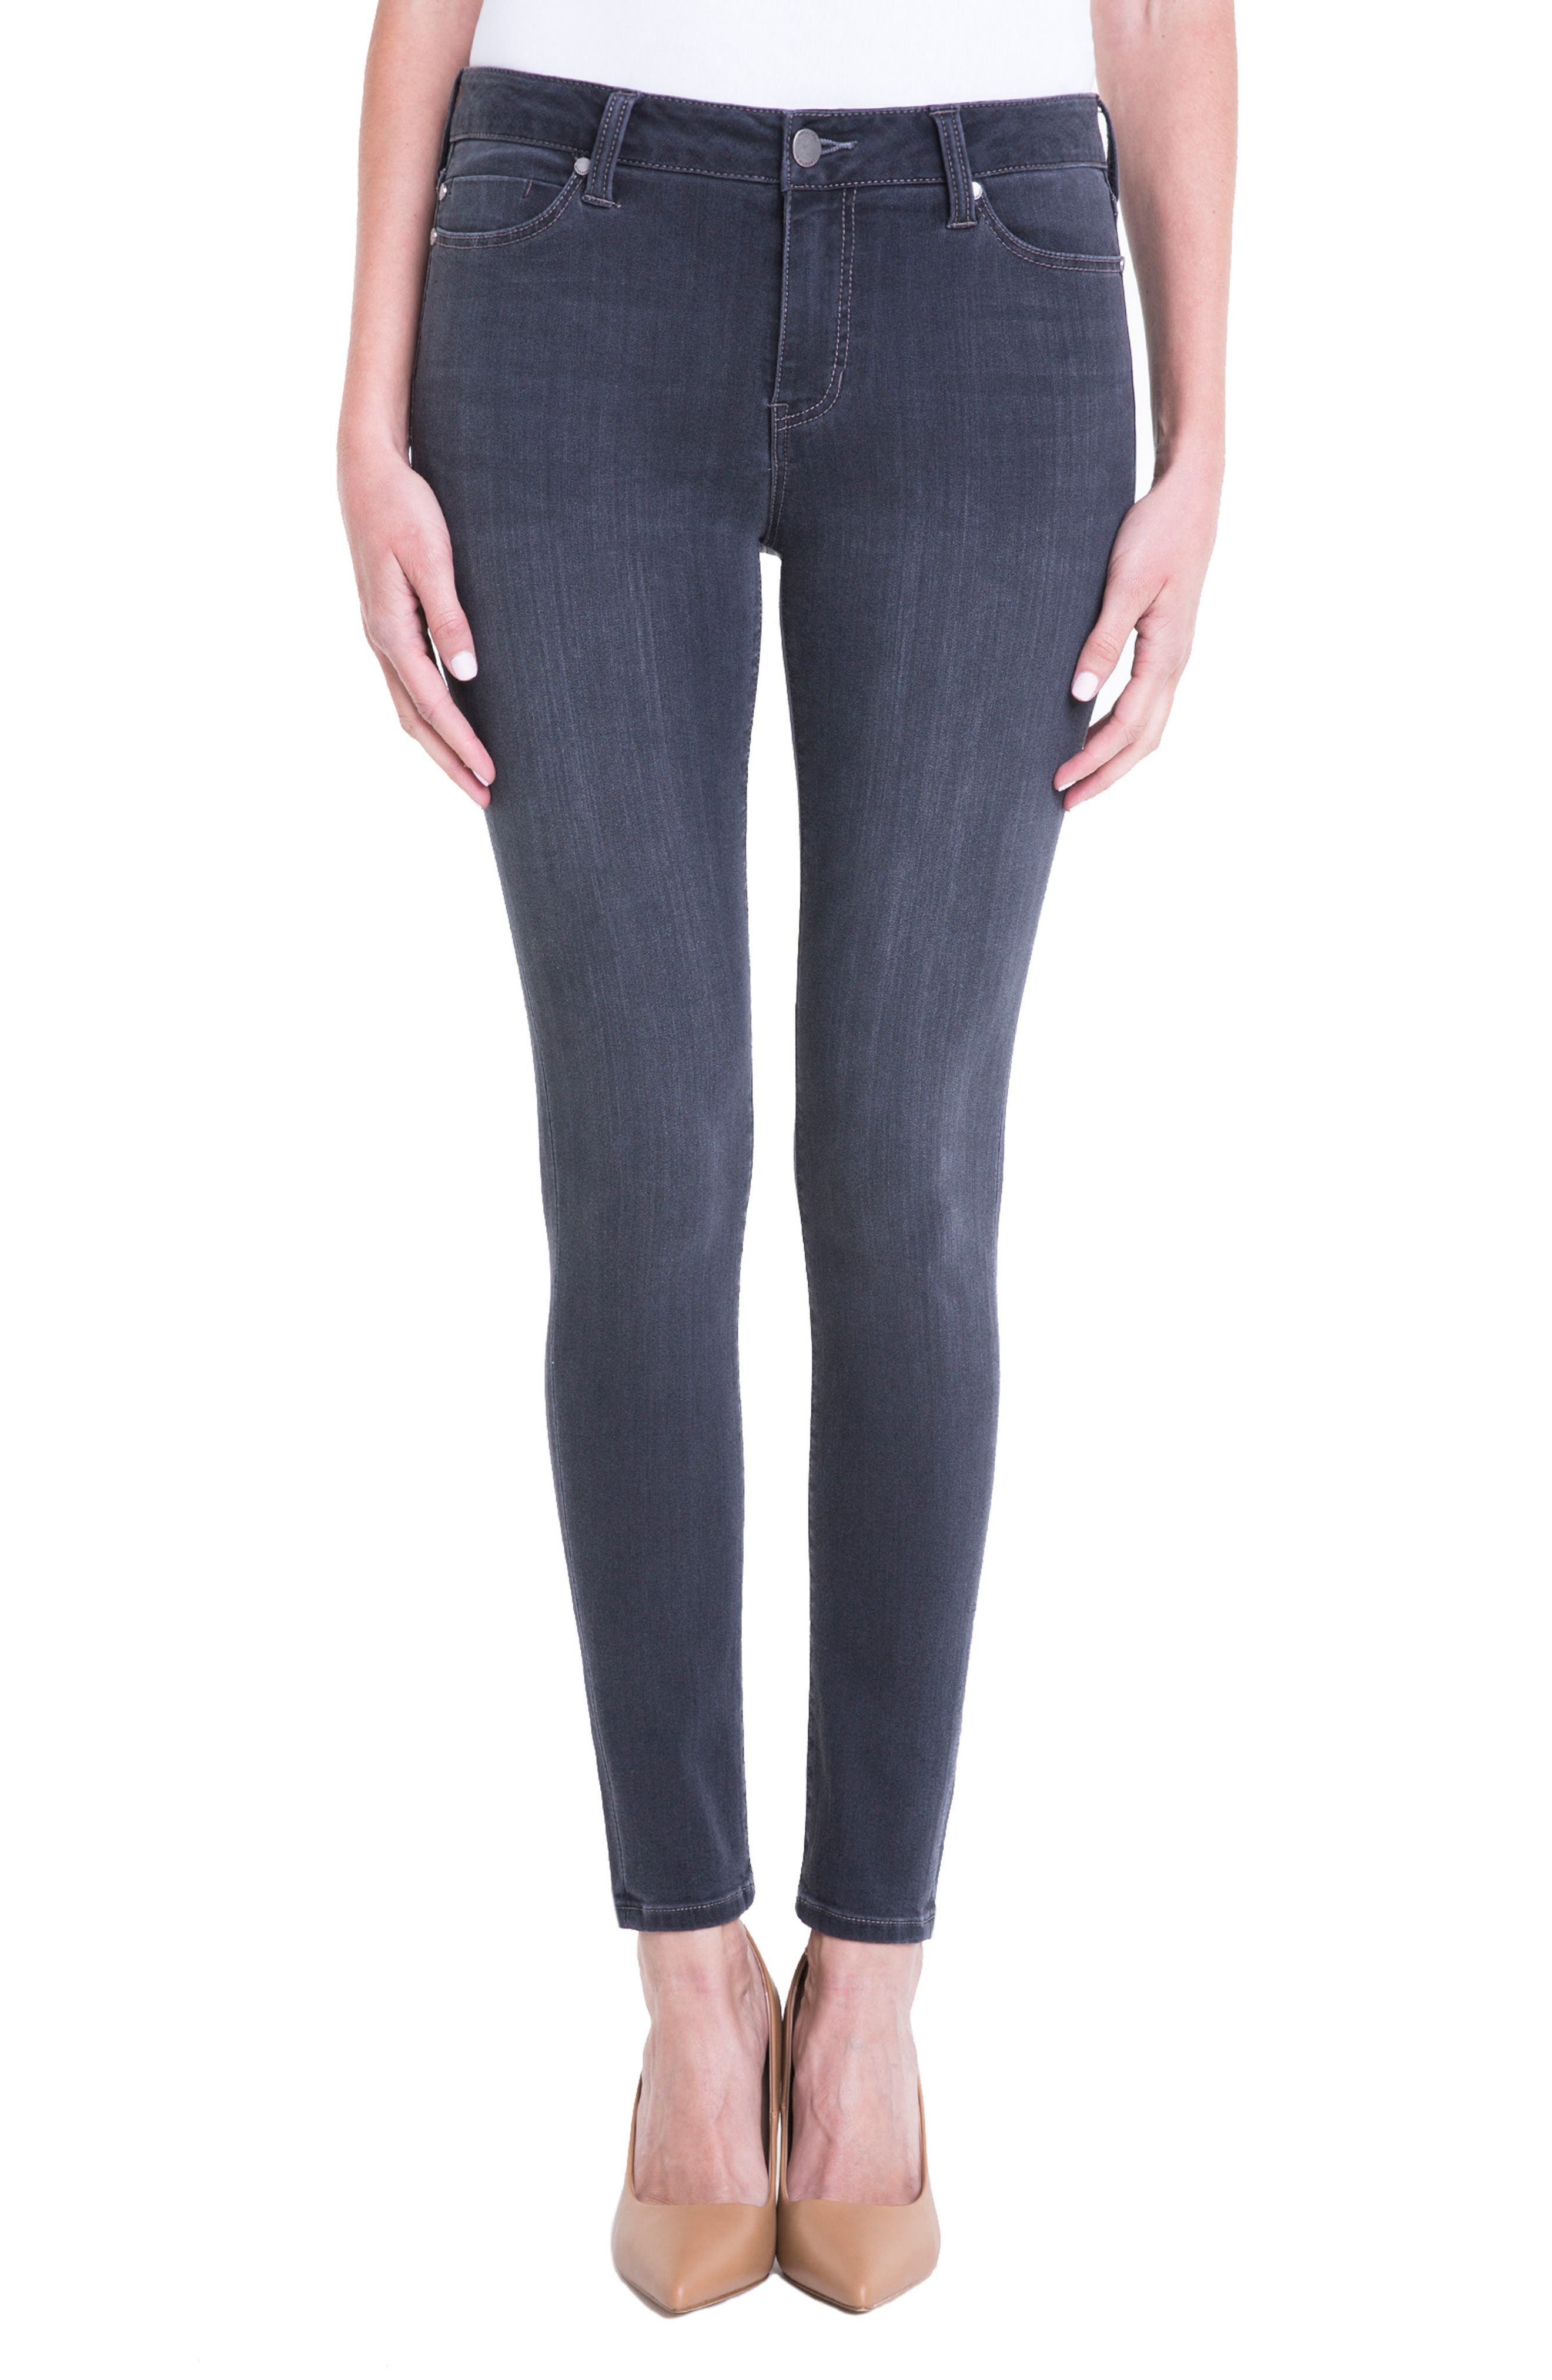 Alternate Image 1 Selected - Liverpool Jeans Company Abby Stretch Skinny Jeans (Meteorite)